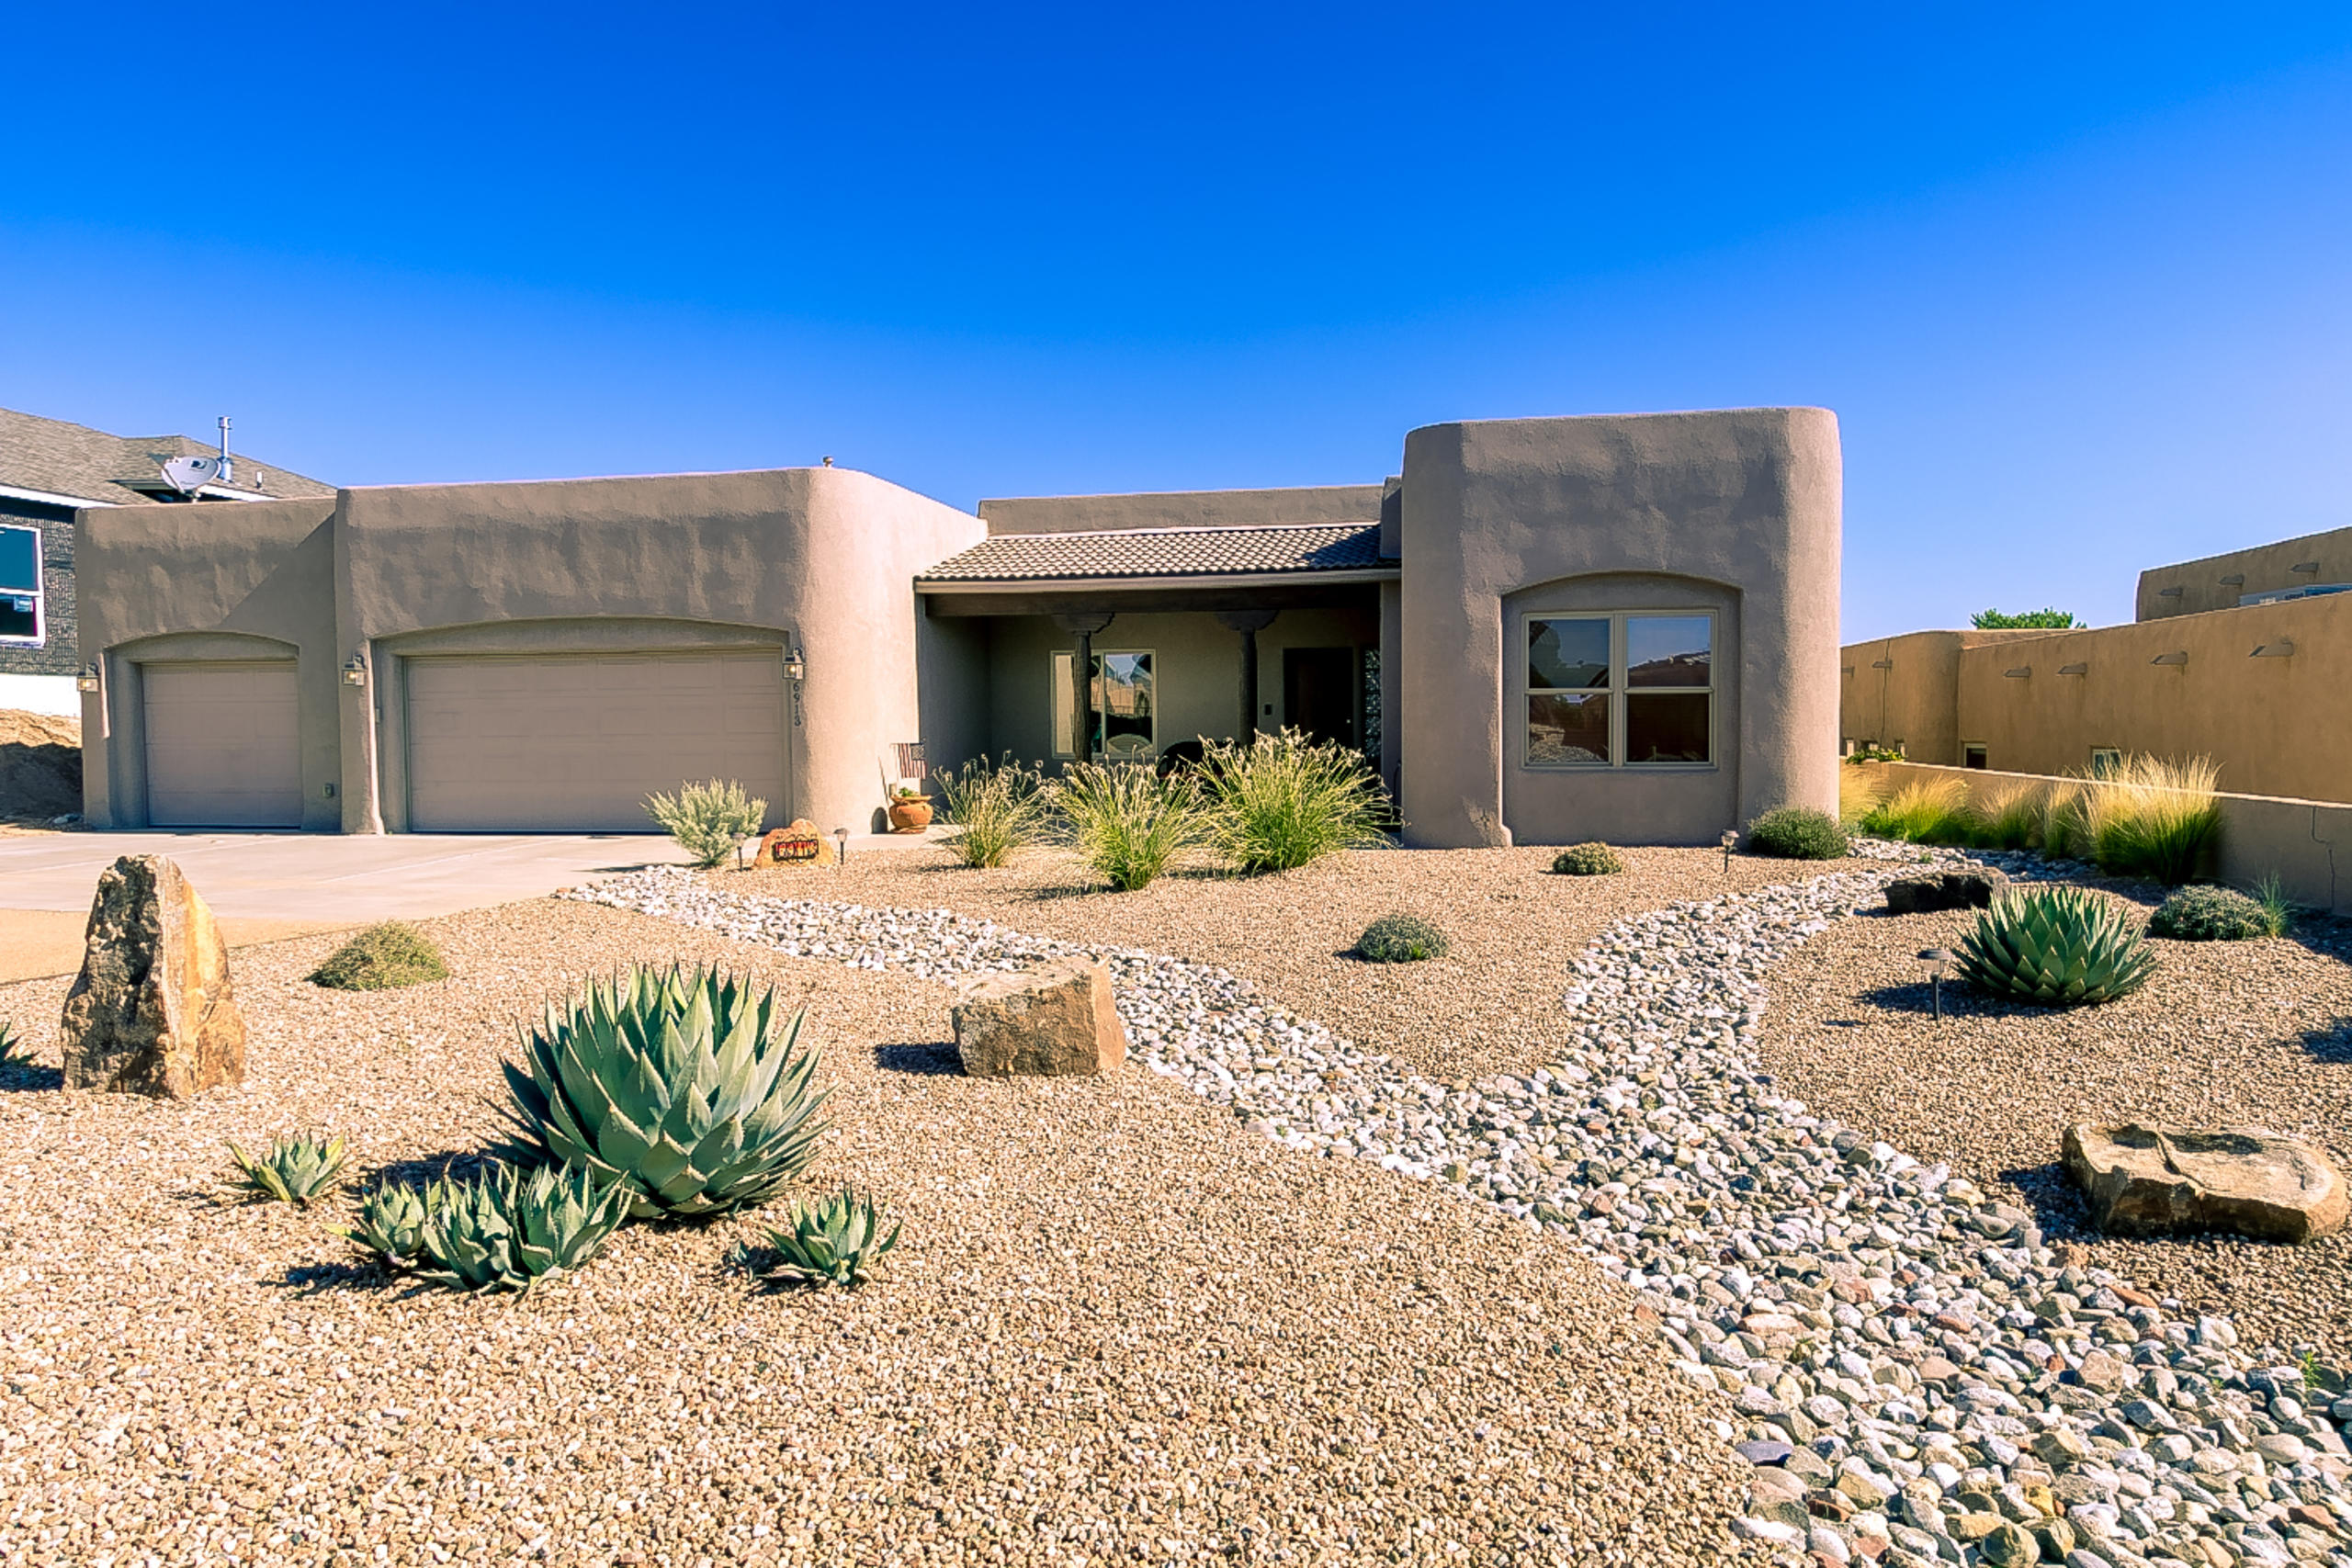 Impeccably Maintained One Story Home On A Half Acre Located in Rio Rancho Estates Views Galore! Numerous Windows To View The Beautiful Rio Rancho Landscape and Mountains. A Southwestern Flare With Wood Columns And Solid Wood Doors. Spacious Kitchen Has SS Appliances, Double Oven,Cooktop,Pantry, Granite Counter Tops And Breakfast Bar. Formal DR . Great Room With Beautiful Built In  Kiva Fireplace Four Bedrooms Which One Could Easily Be An Office/Study. The Spacious Master Bedroom  Has Two Separate Walk In Closets, Two Vanity Sinks, Separate Shower and Garden Tub.For Added Privacy It is Located on The Opposite Side Of The Home From the Other Bedrooms.Three Car Garage And Covered Patio. Refrigerated Air 2018 TPO Roof With Transferable Warranty The Market Is Hot! Request A Showing Today!